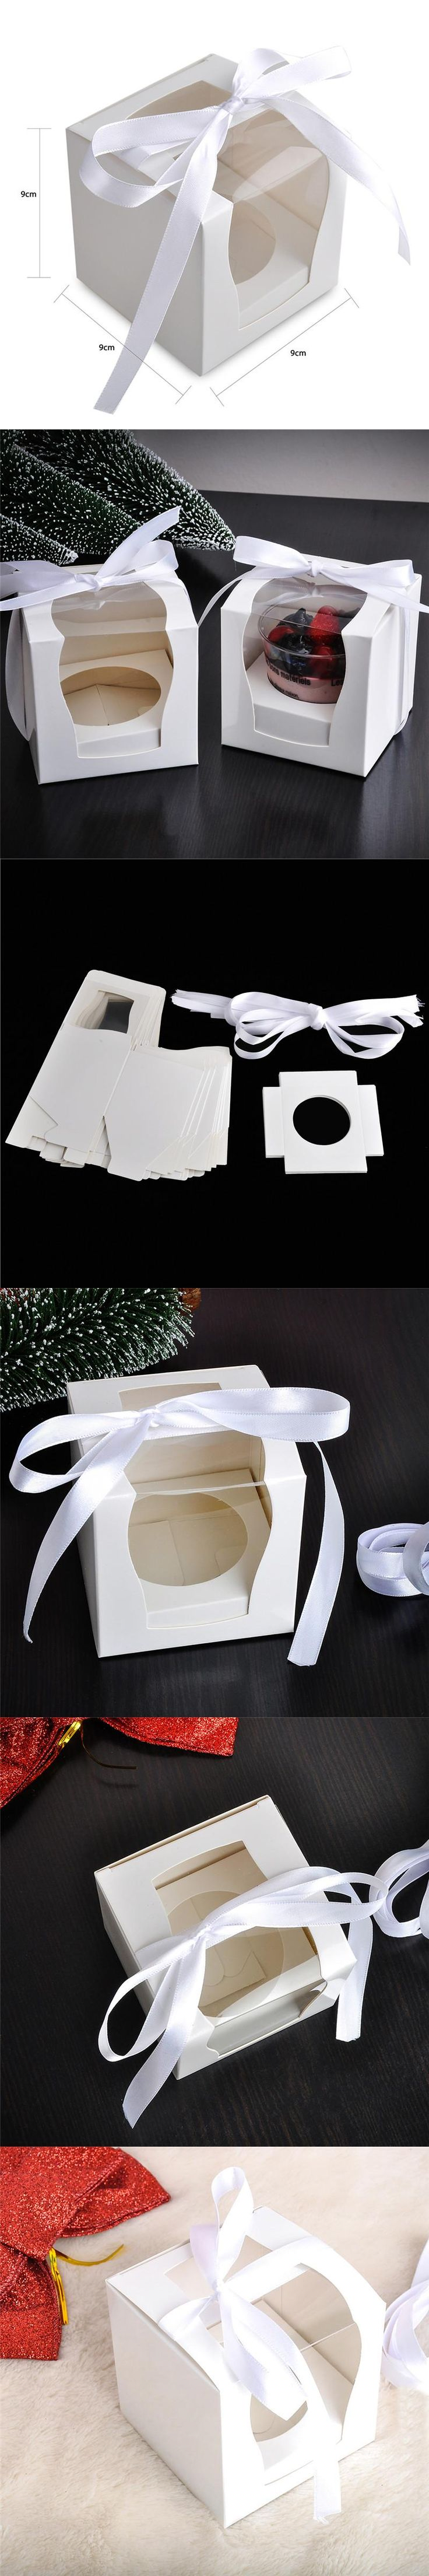 12pcs/lot cupcake boxes candy box with transparent pvc window wedding favor box birthday shower party pudding package case